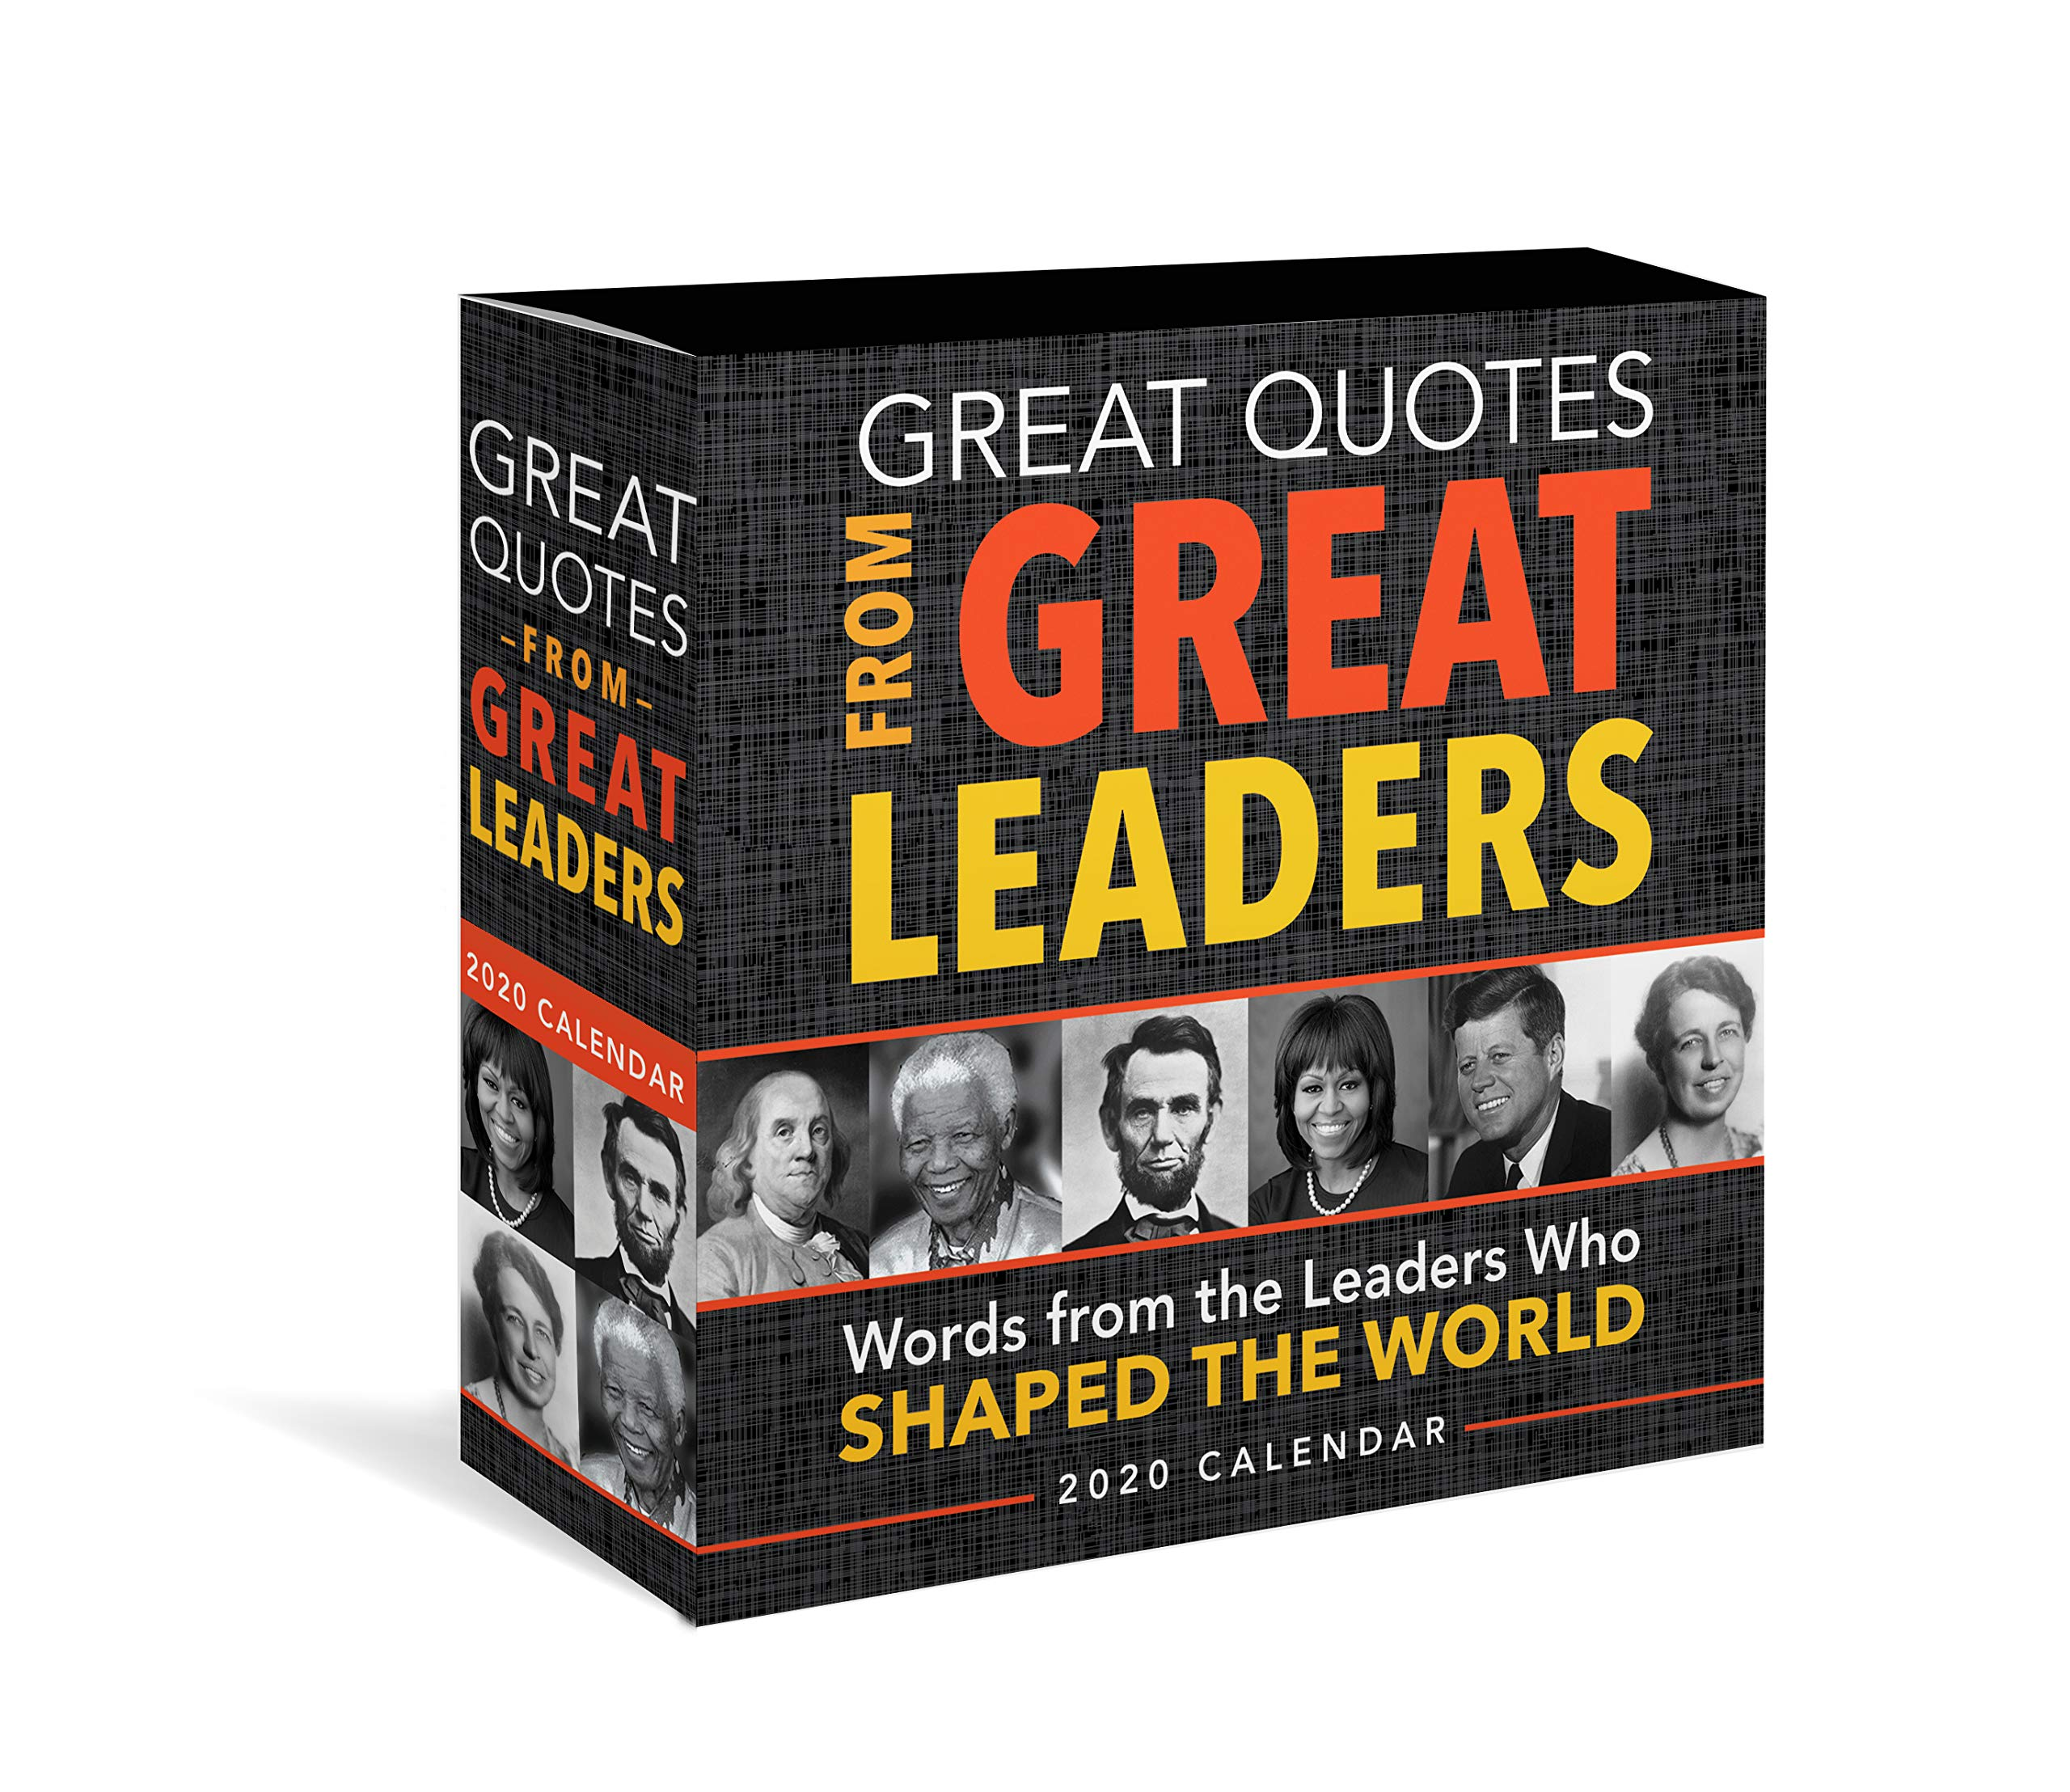 2020 Great Quotes from Great Leaders Boxed Calendar